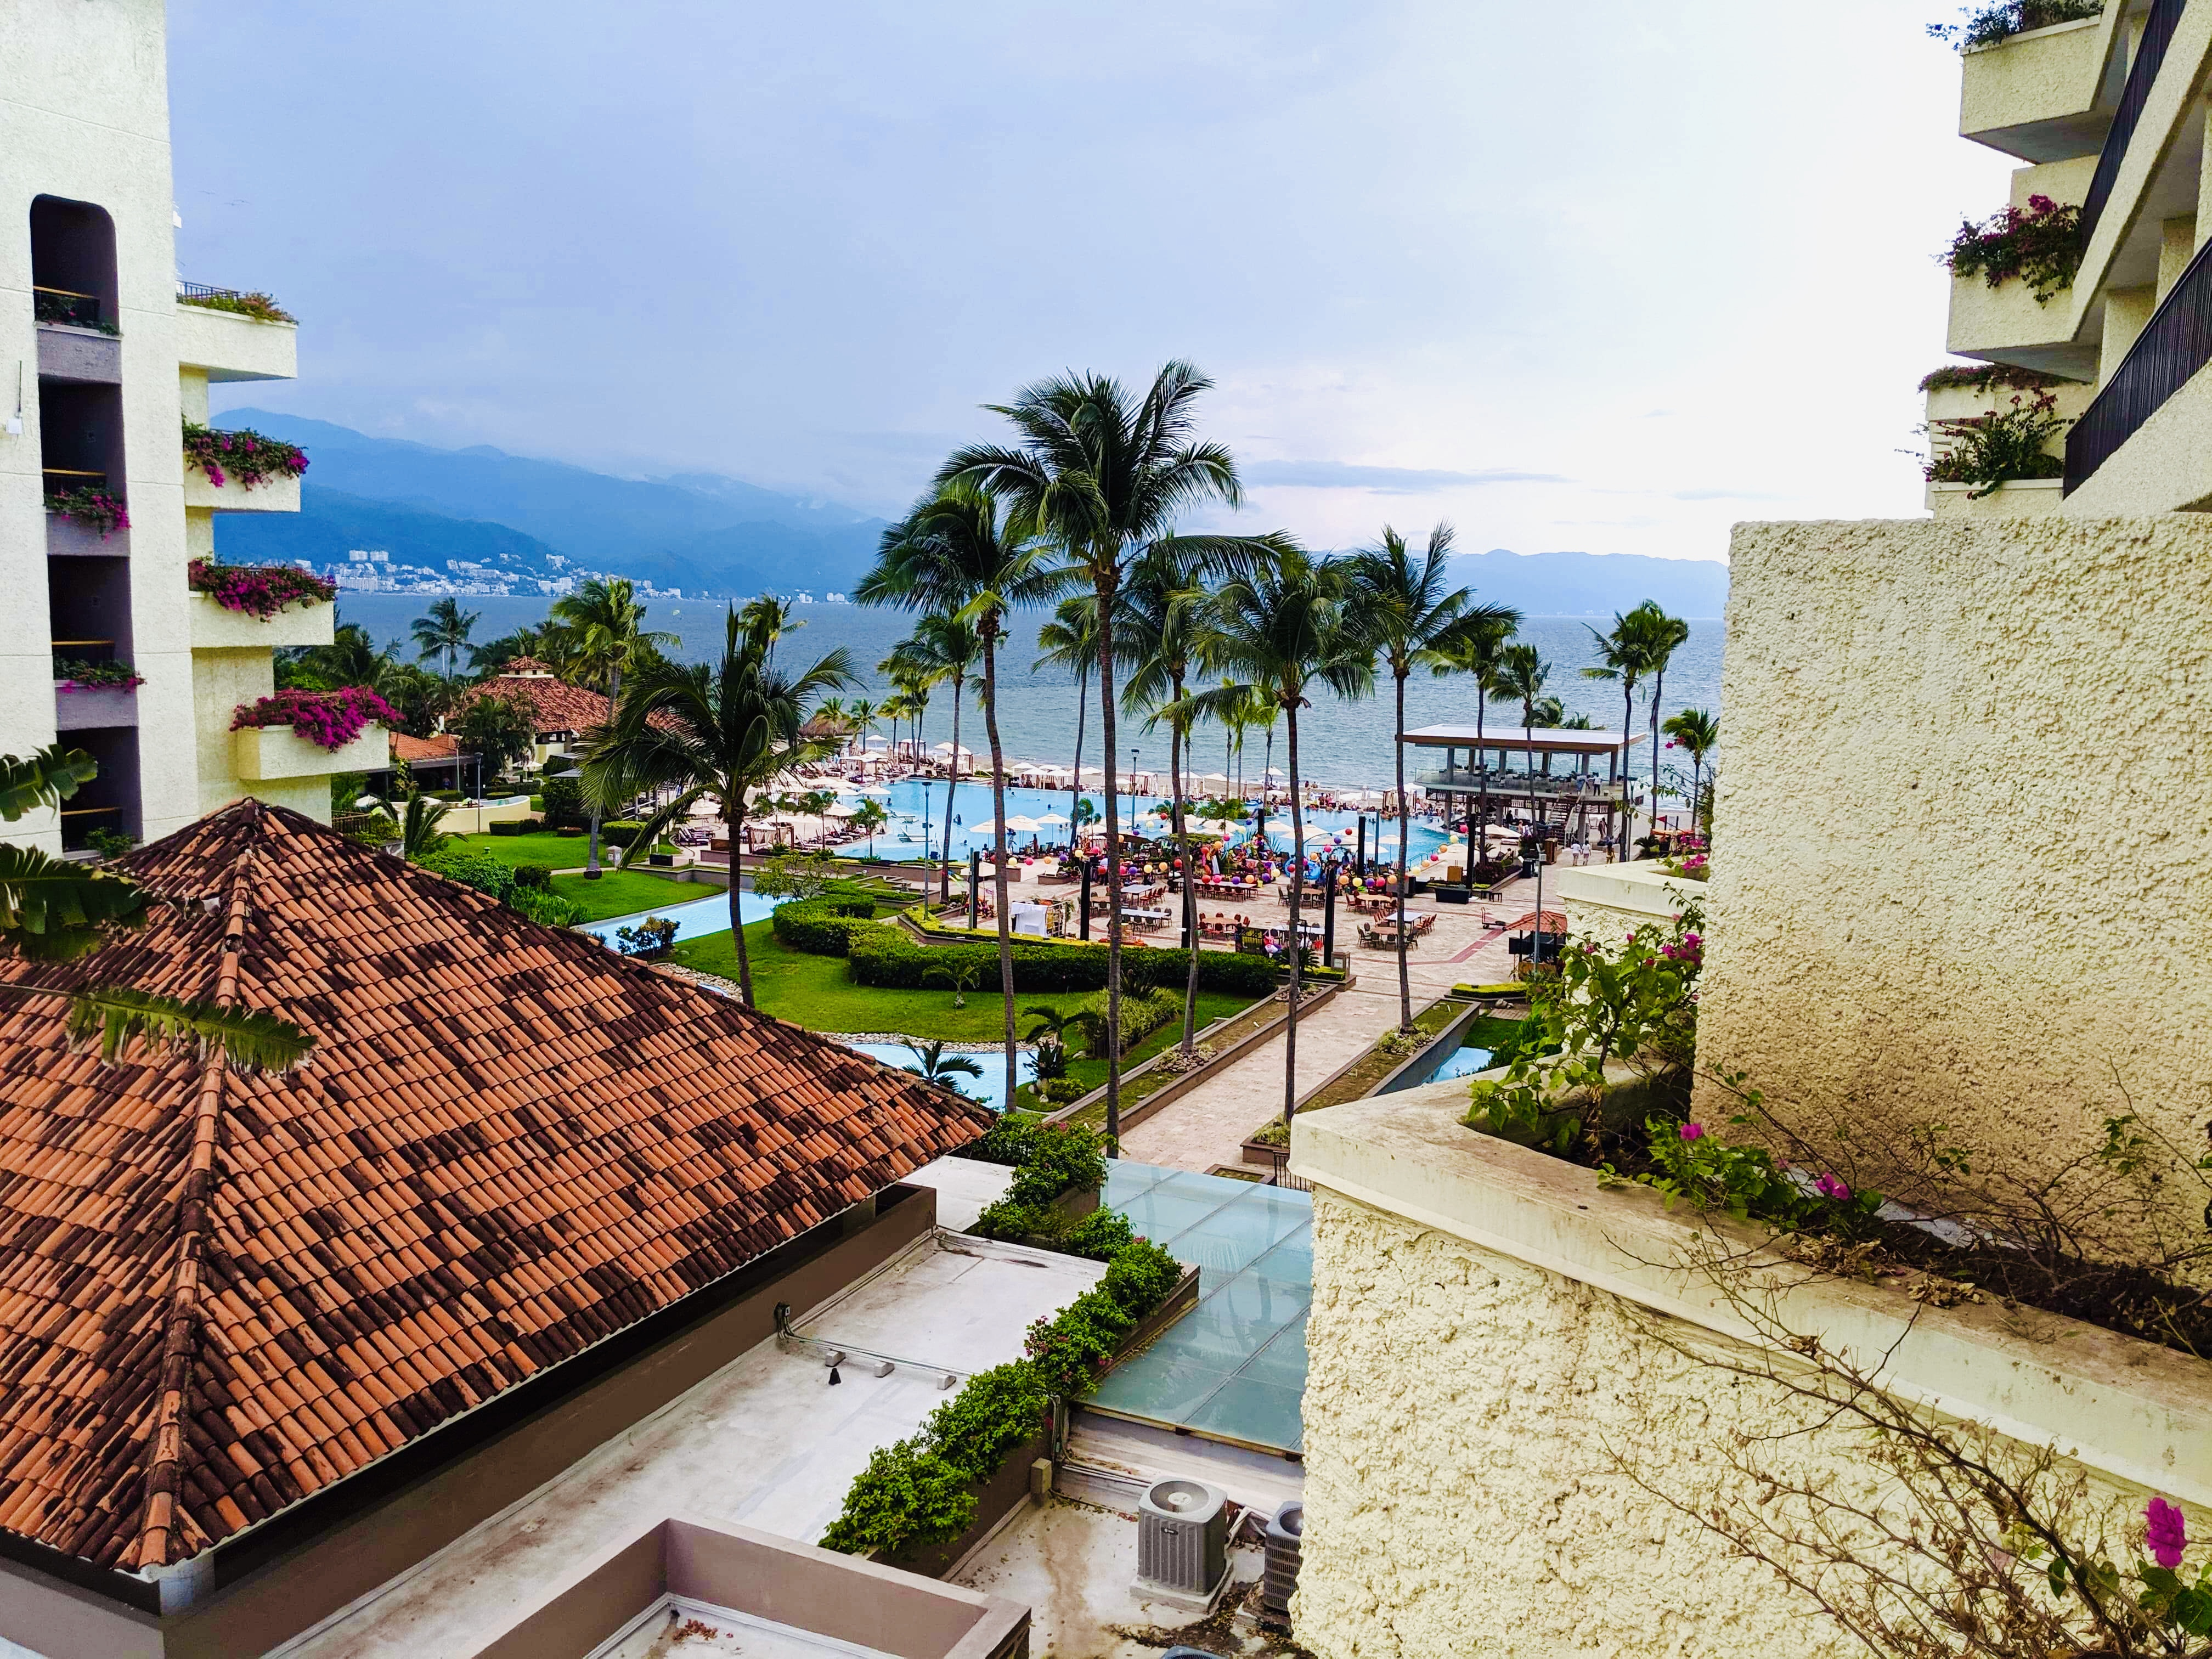 View of the pool, beach, and mountains, from our hotel terrace. 6 Puerto Vallarta Fun Facts